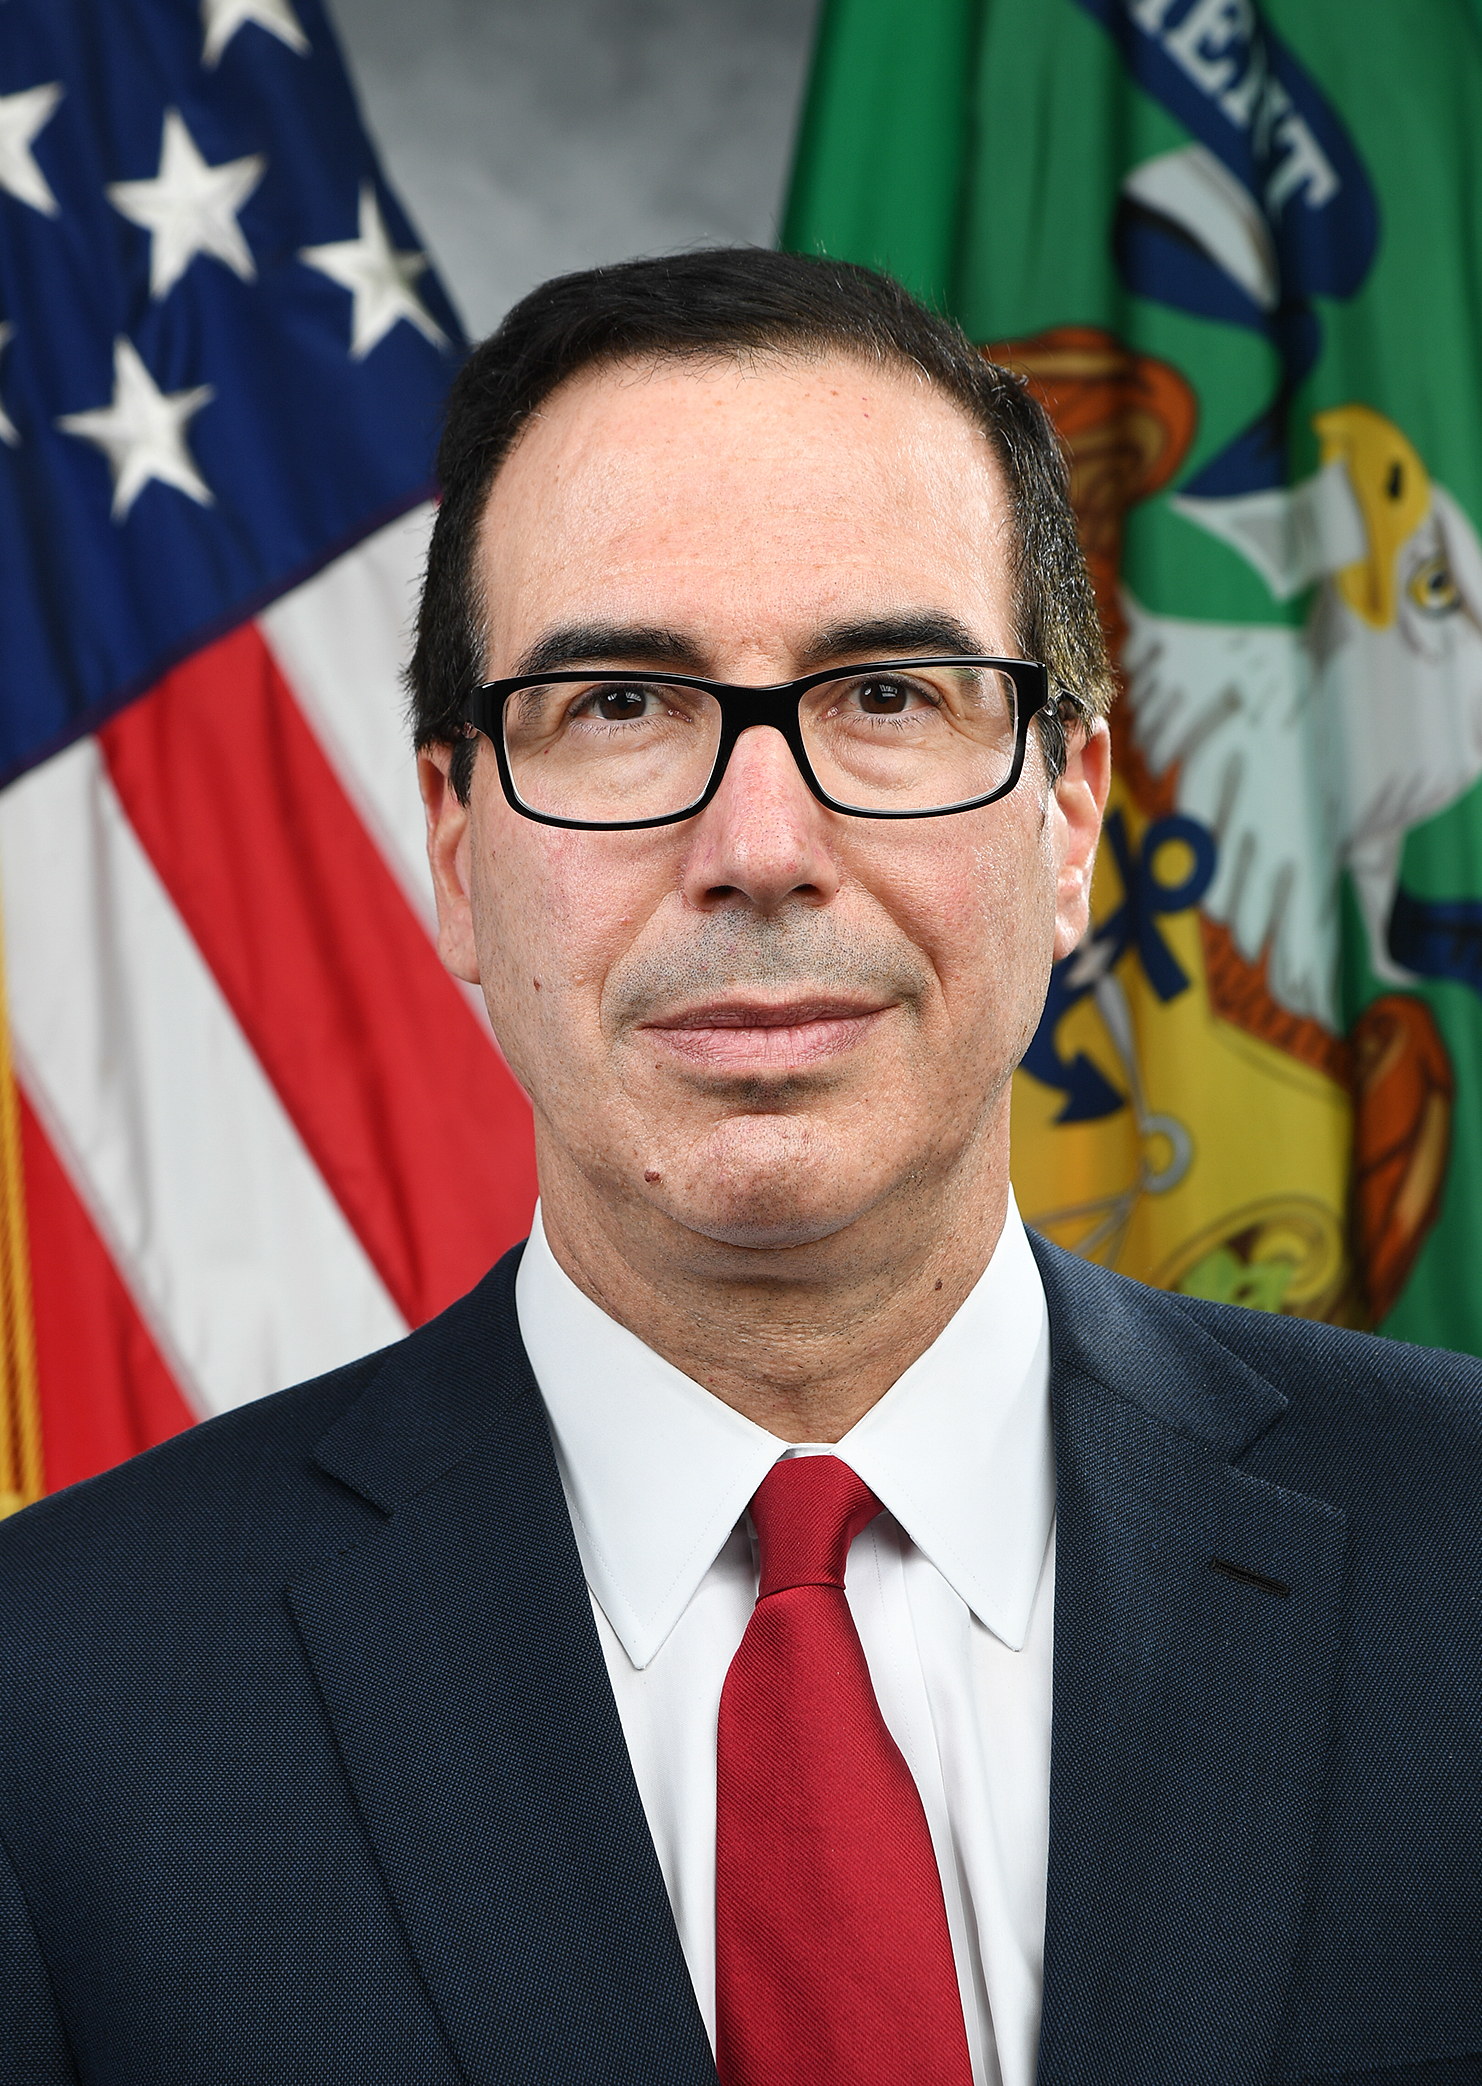 File:Steven Mnuchin official photo.jpg - Wikimedia Commons